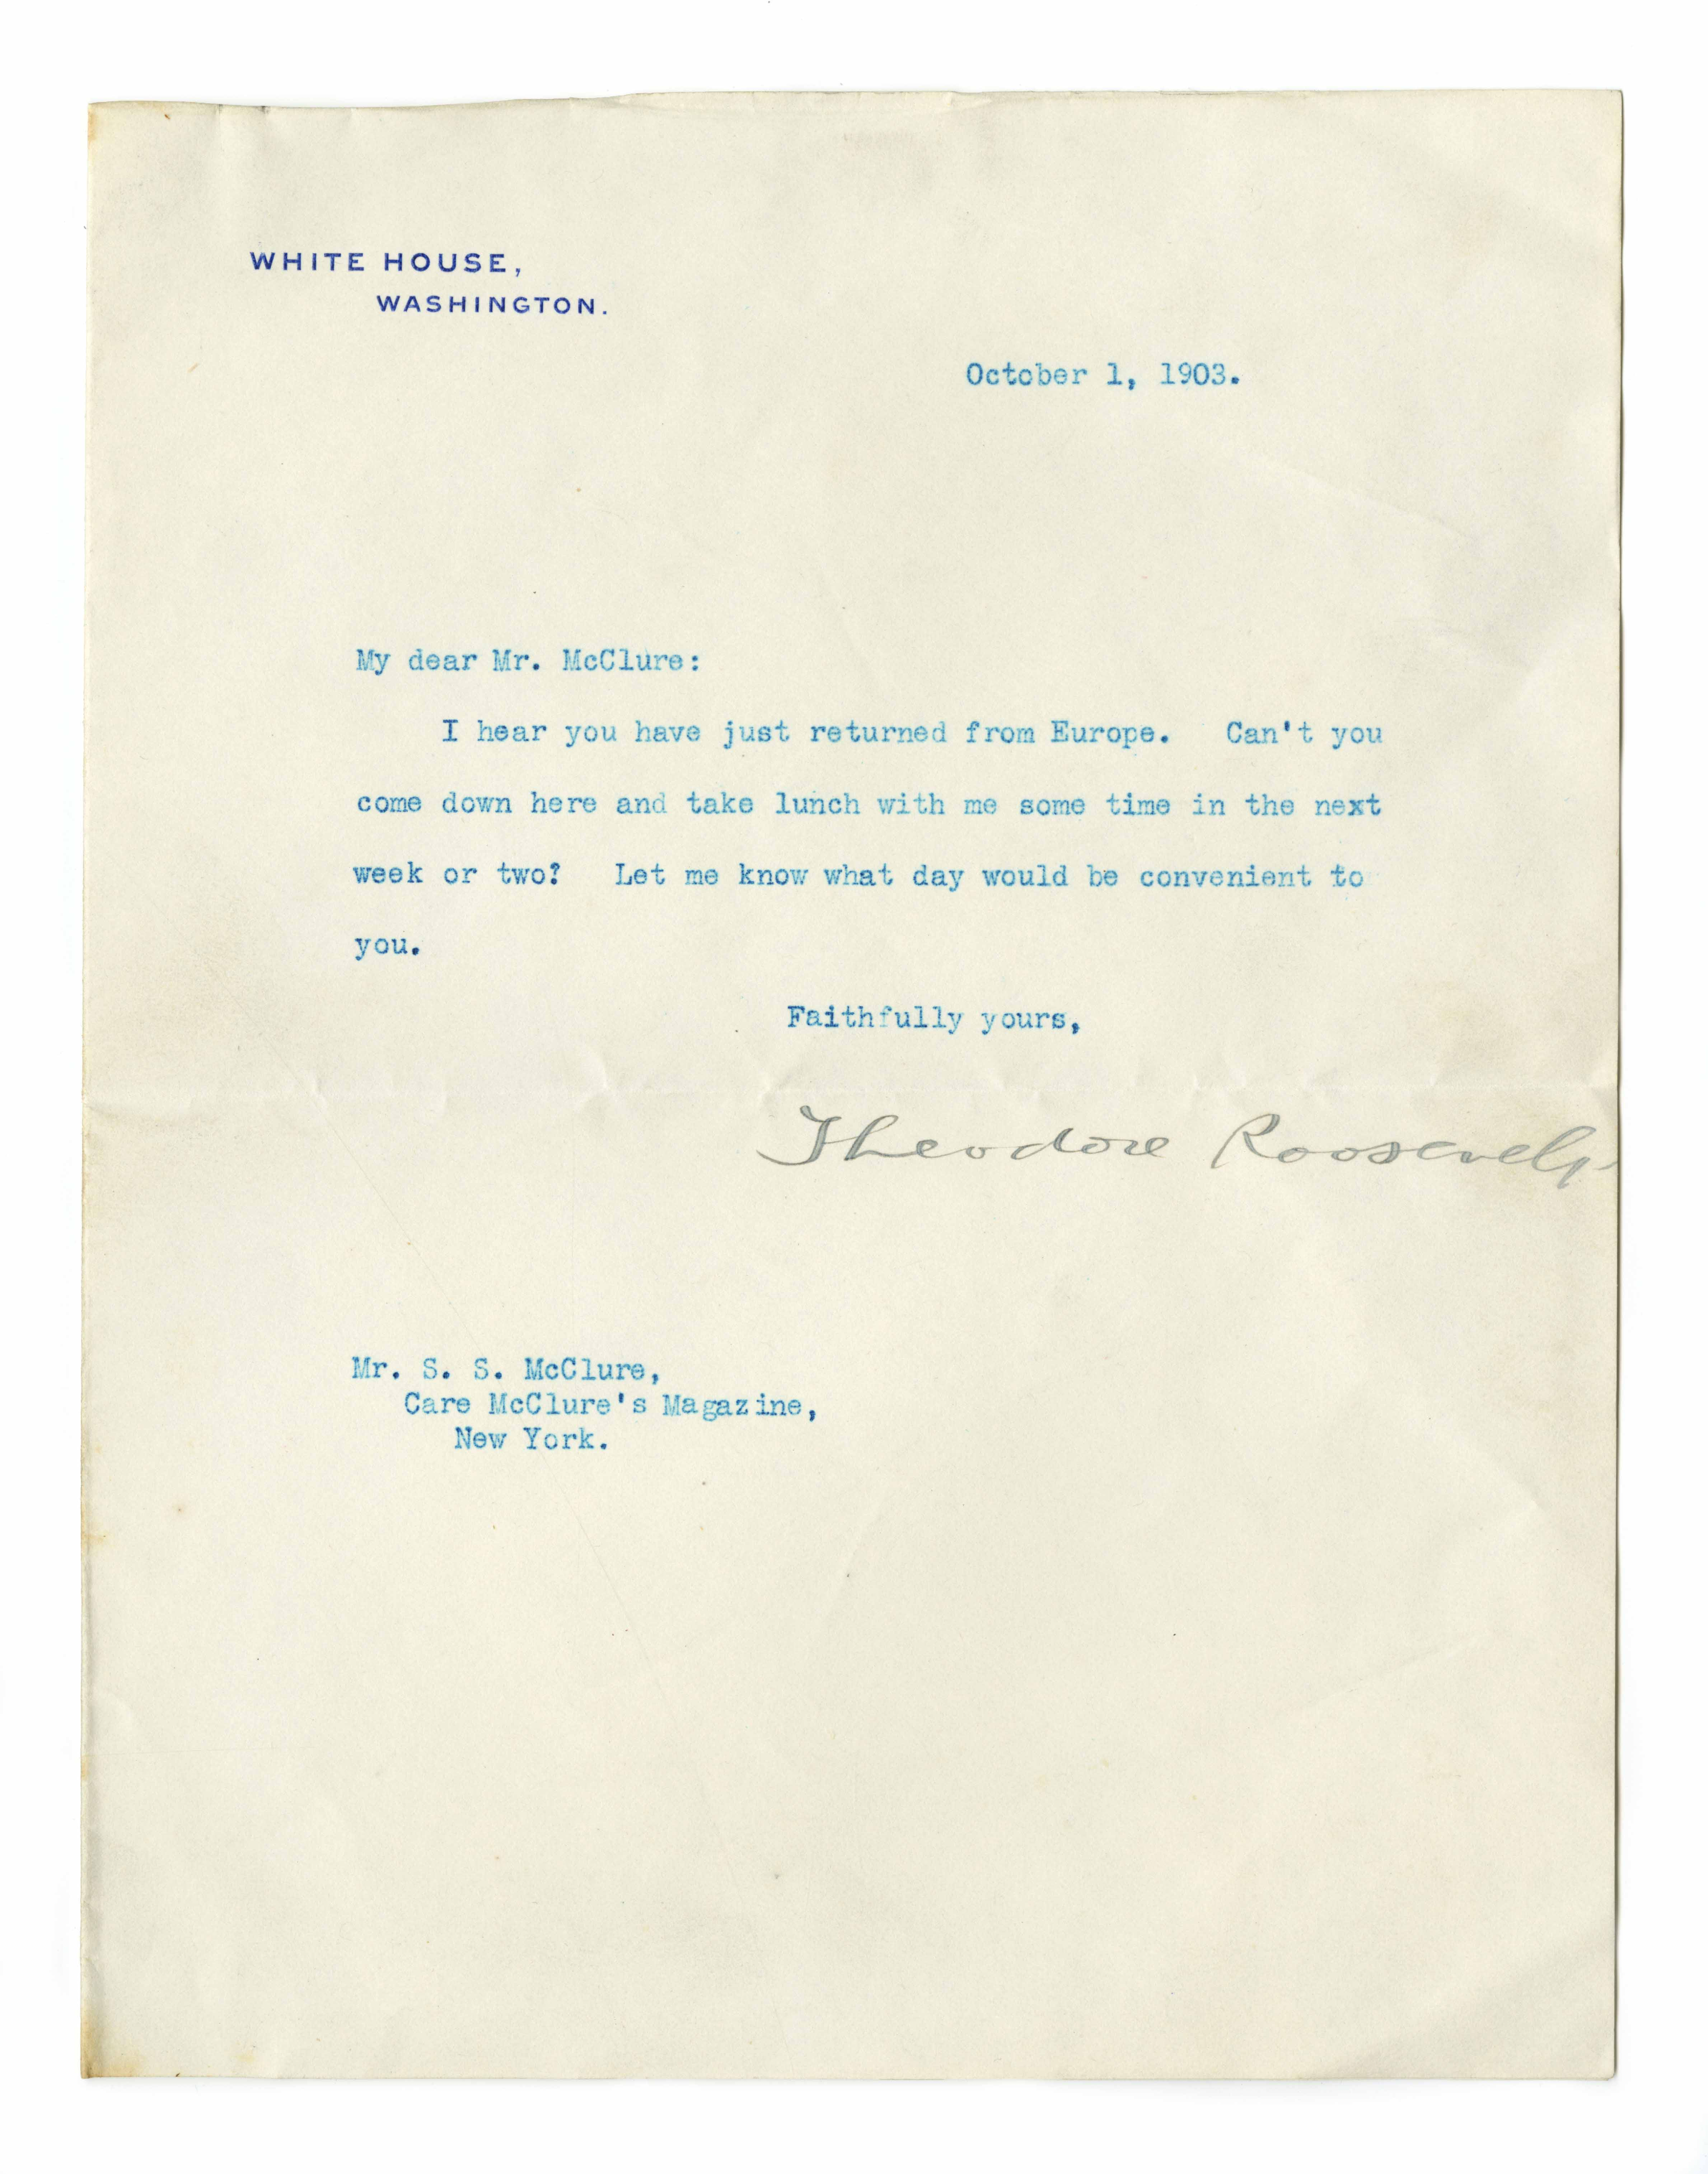 Letter from Theodore Roosevelt to S. S. McClure, October 1, 1903.